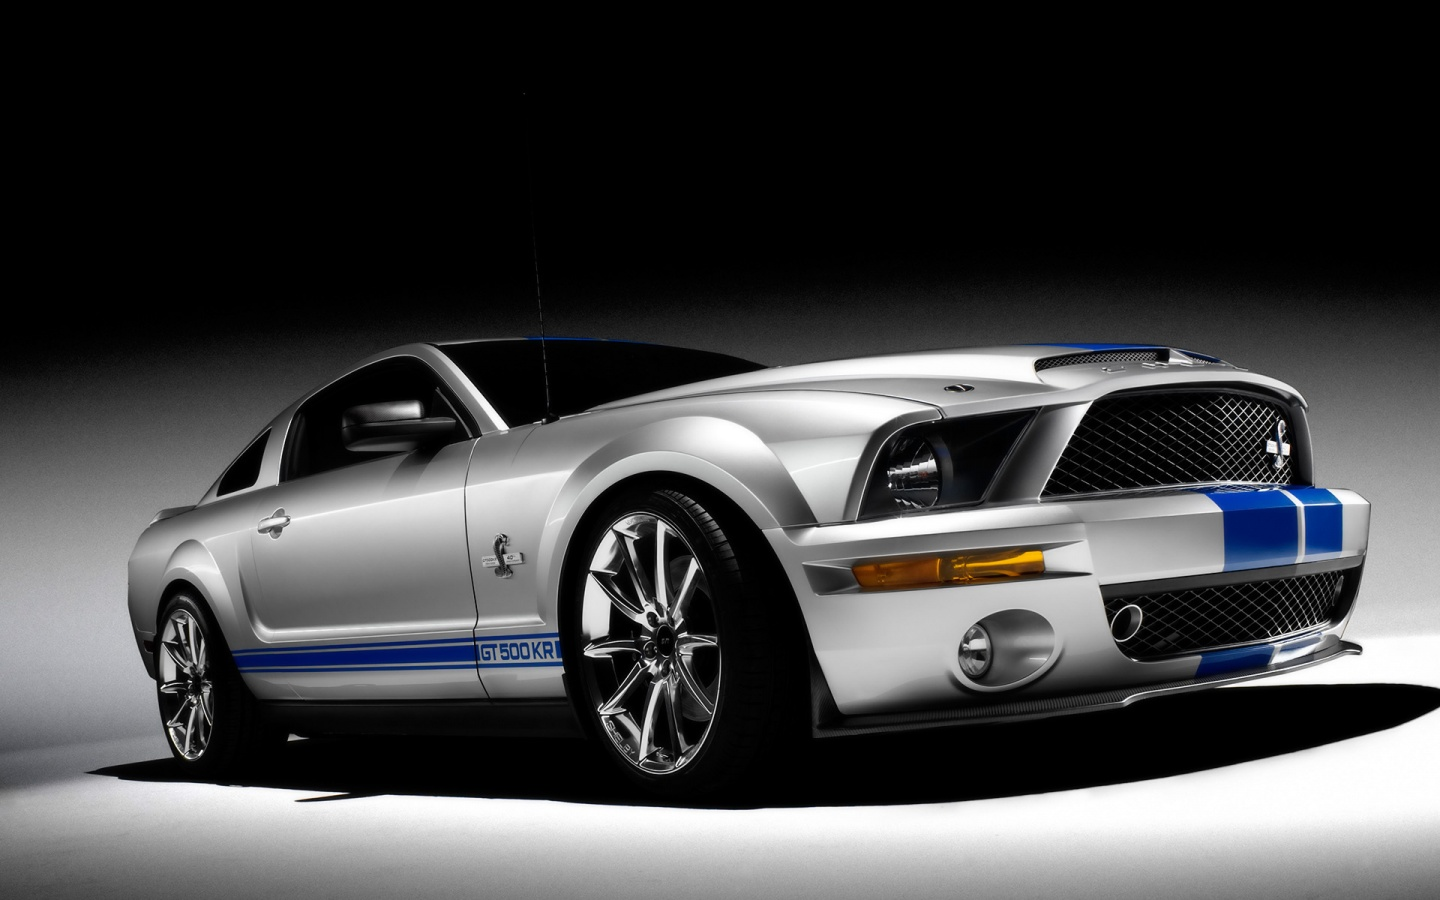 Mustang shelby gt500kr 2